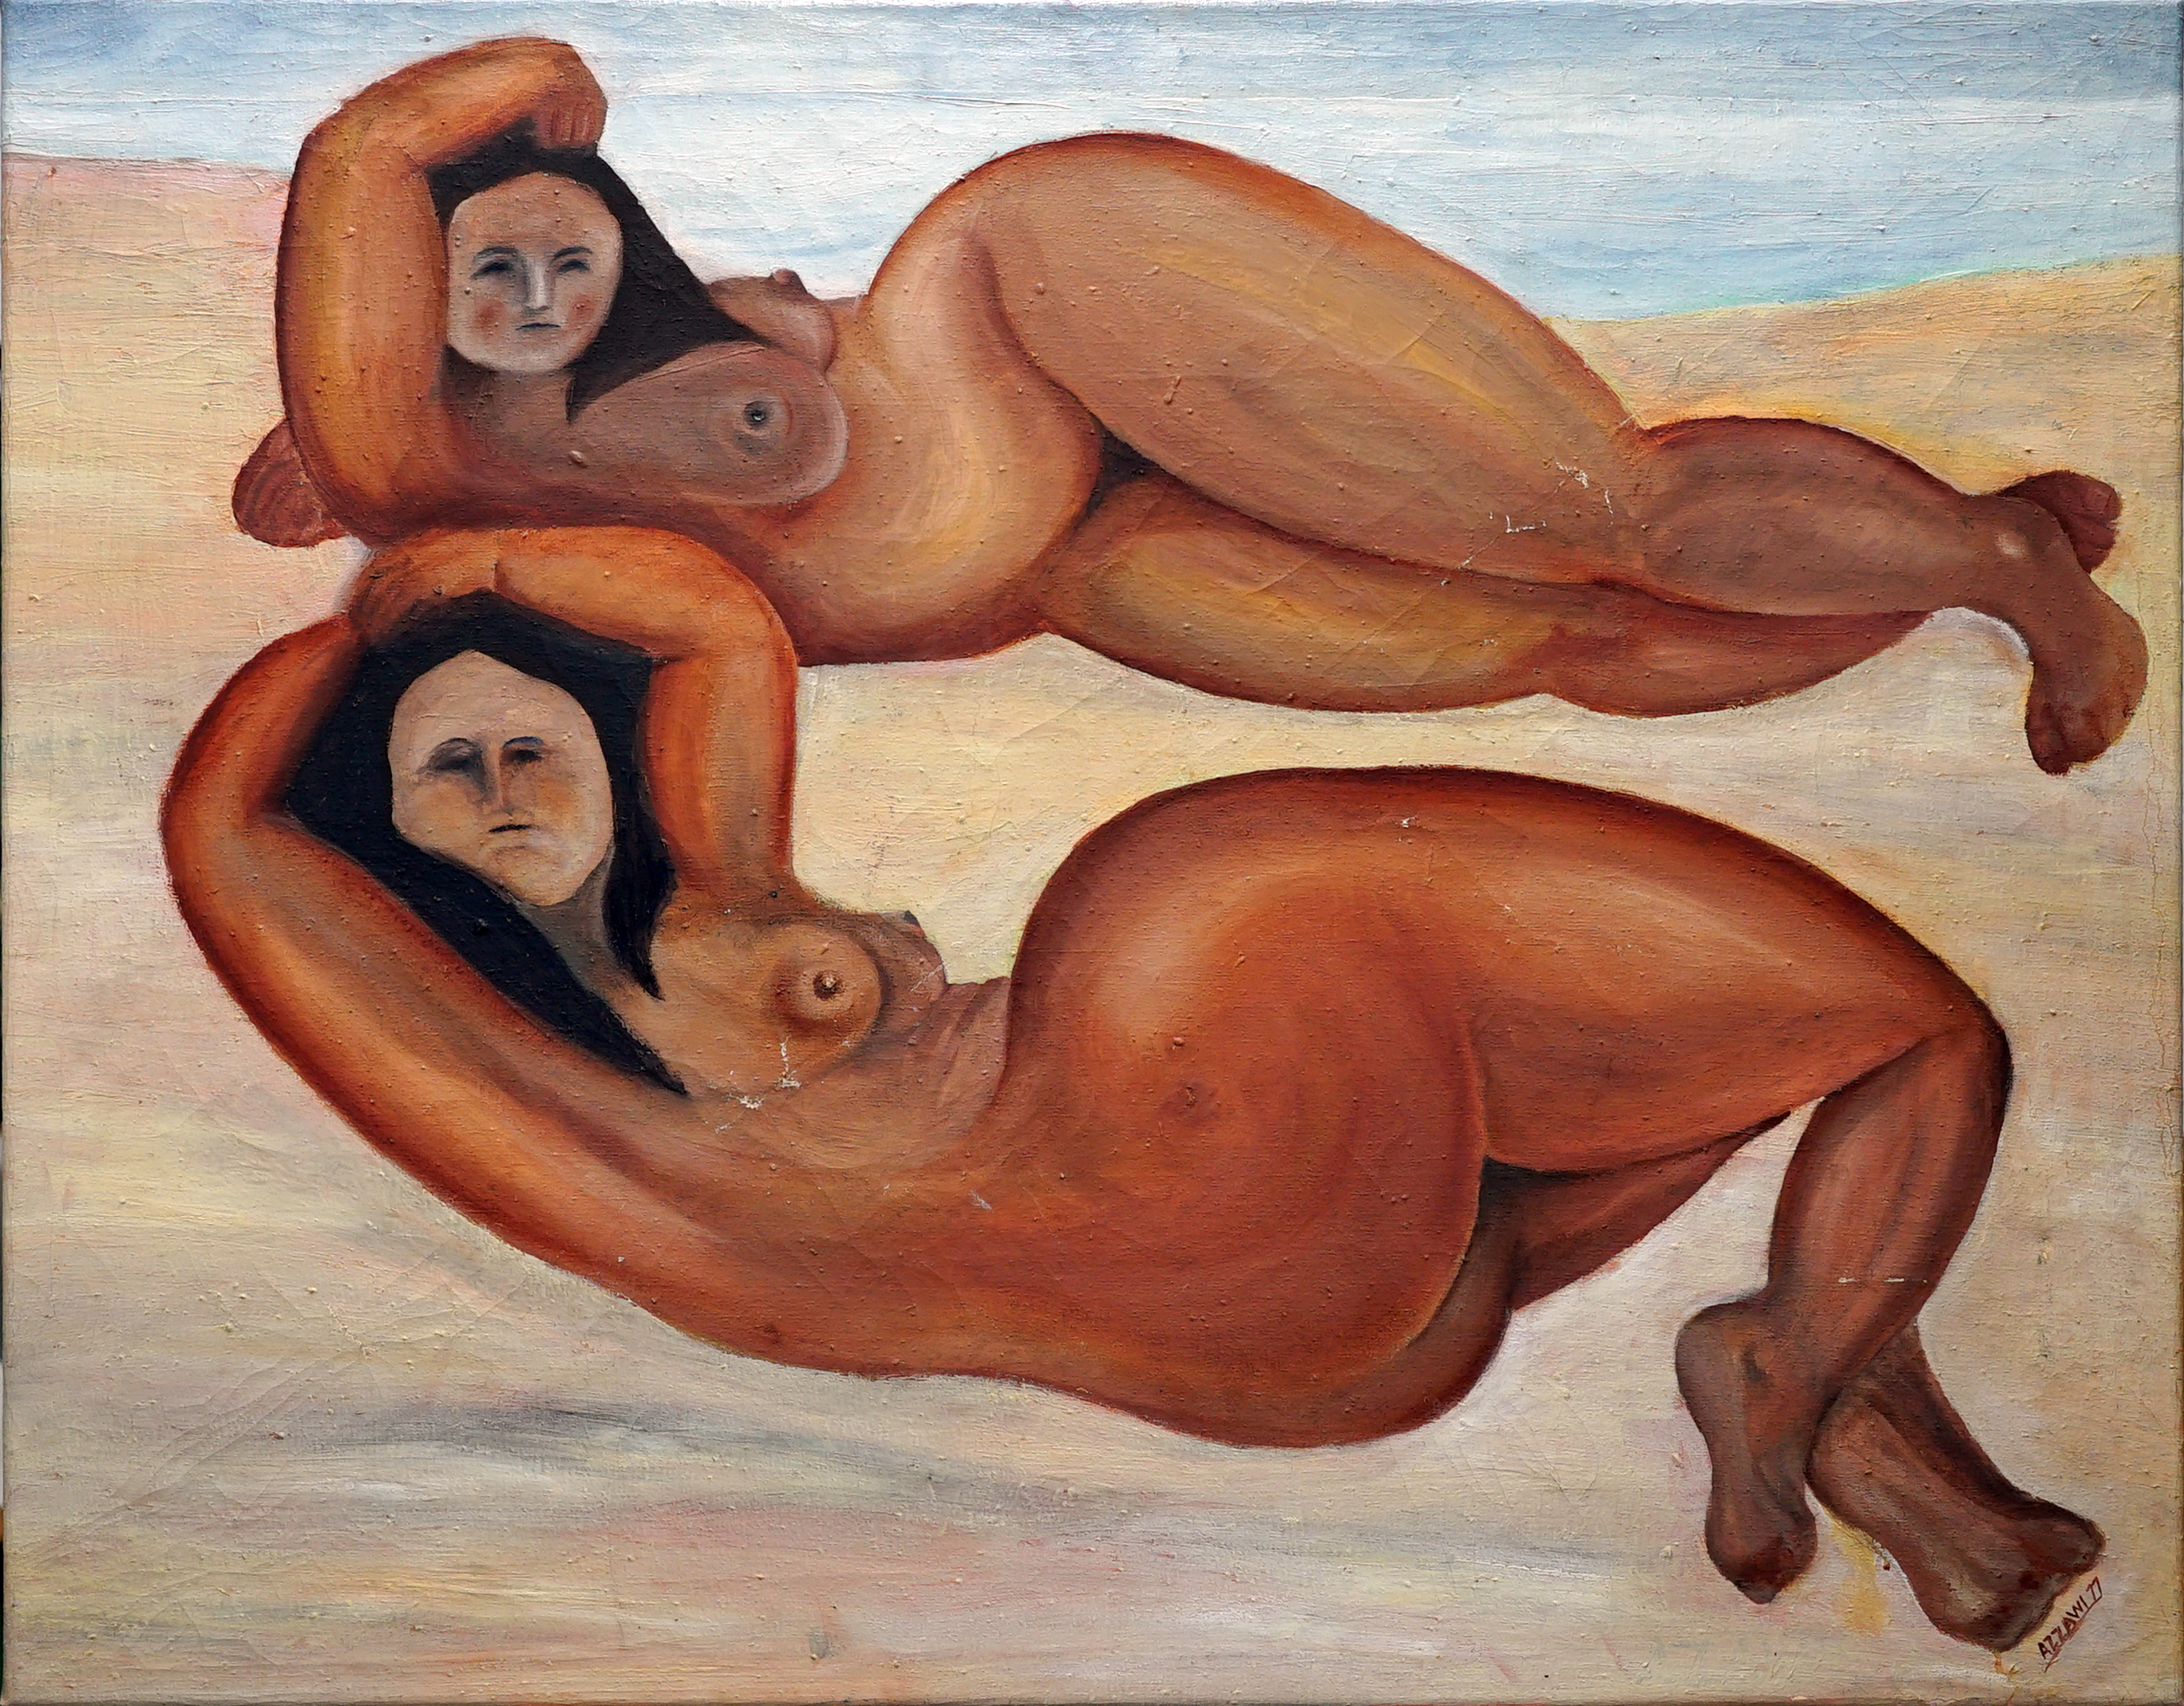 woman sunbathing 76x96 cm, oil on canvas